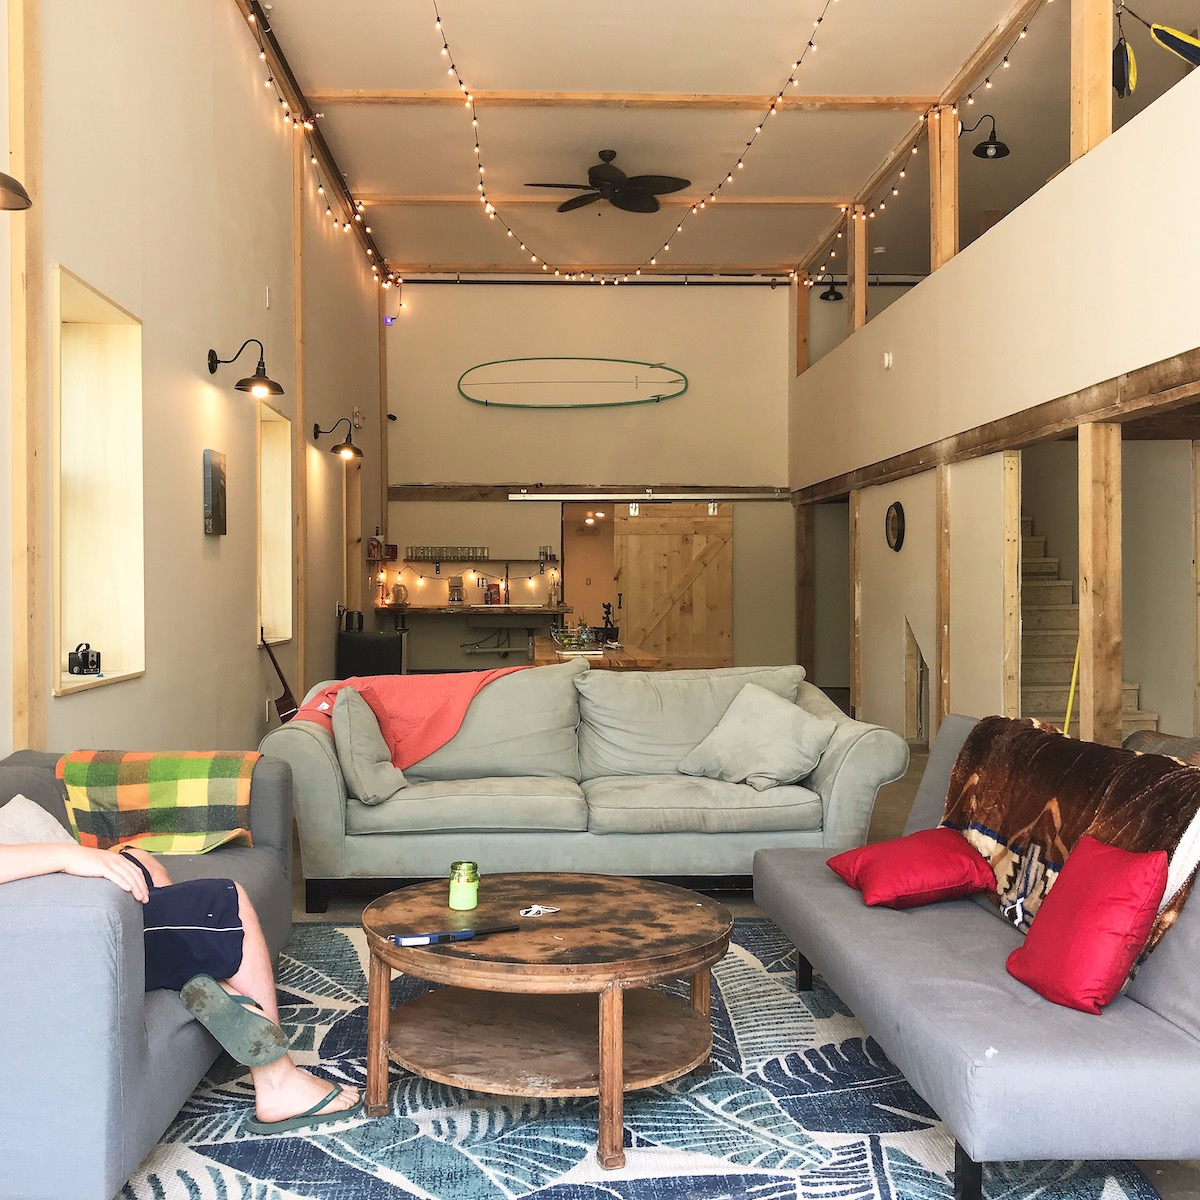 Barn Door Hostel and Campground - starting at $10 (outside) and $20 (inside) (per person, per night) dogs allowed outside with proper paperwork